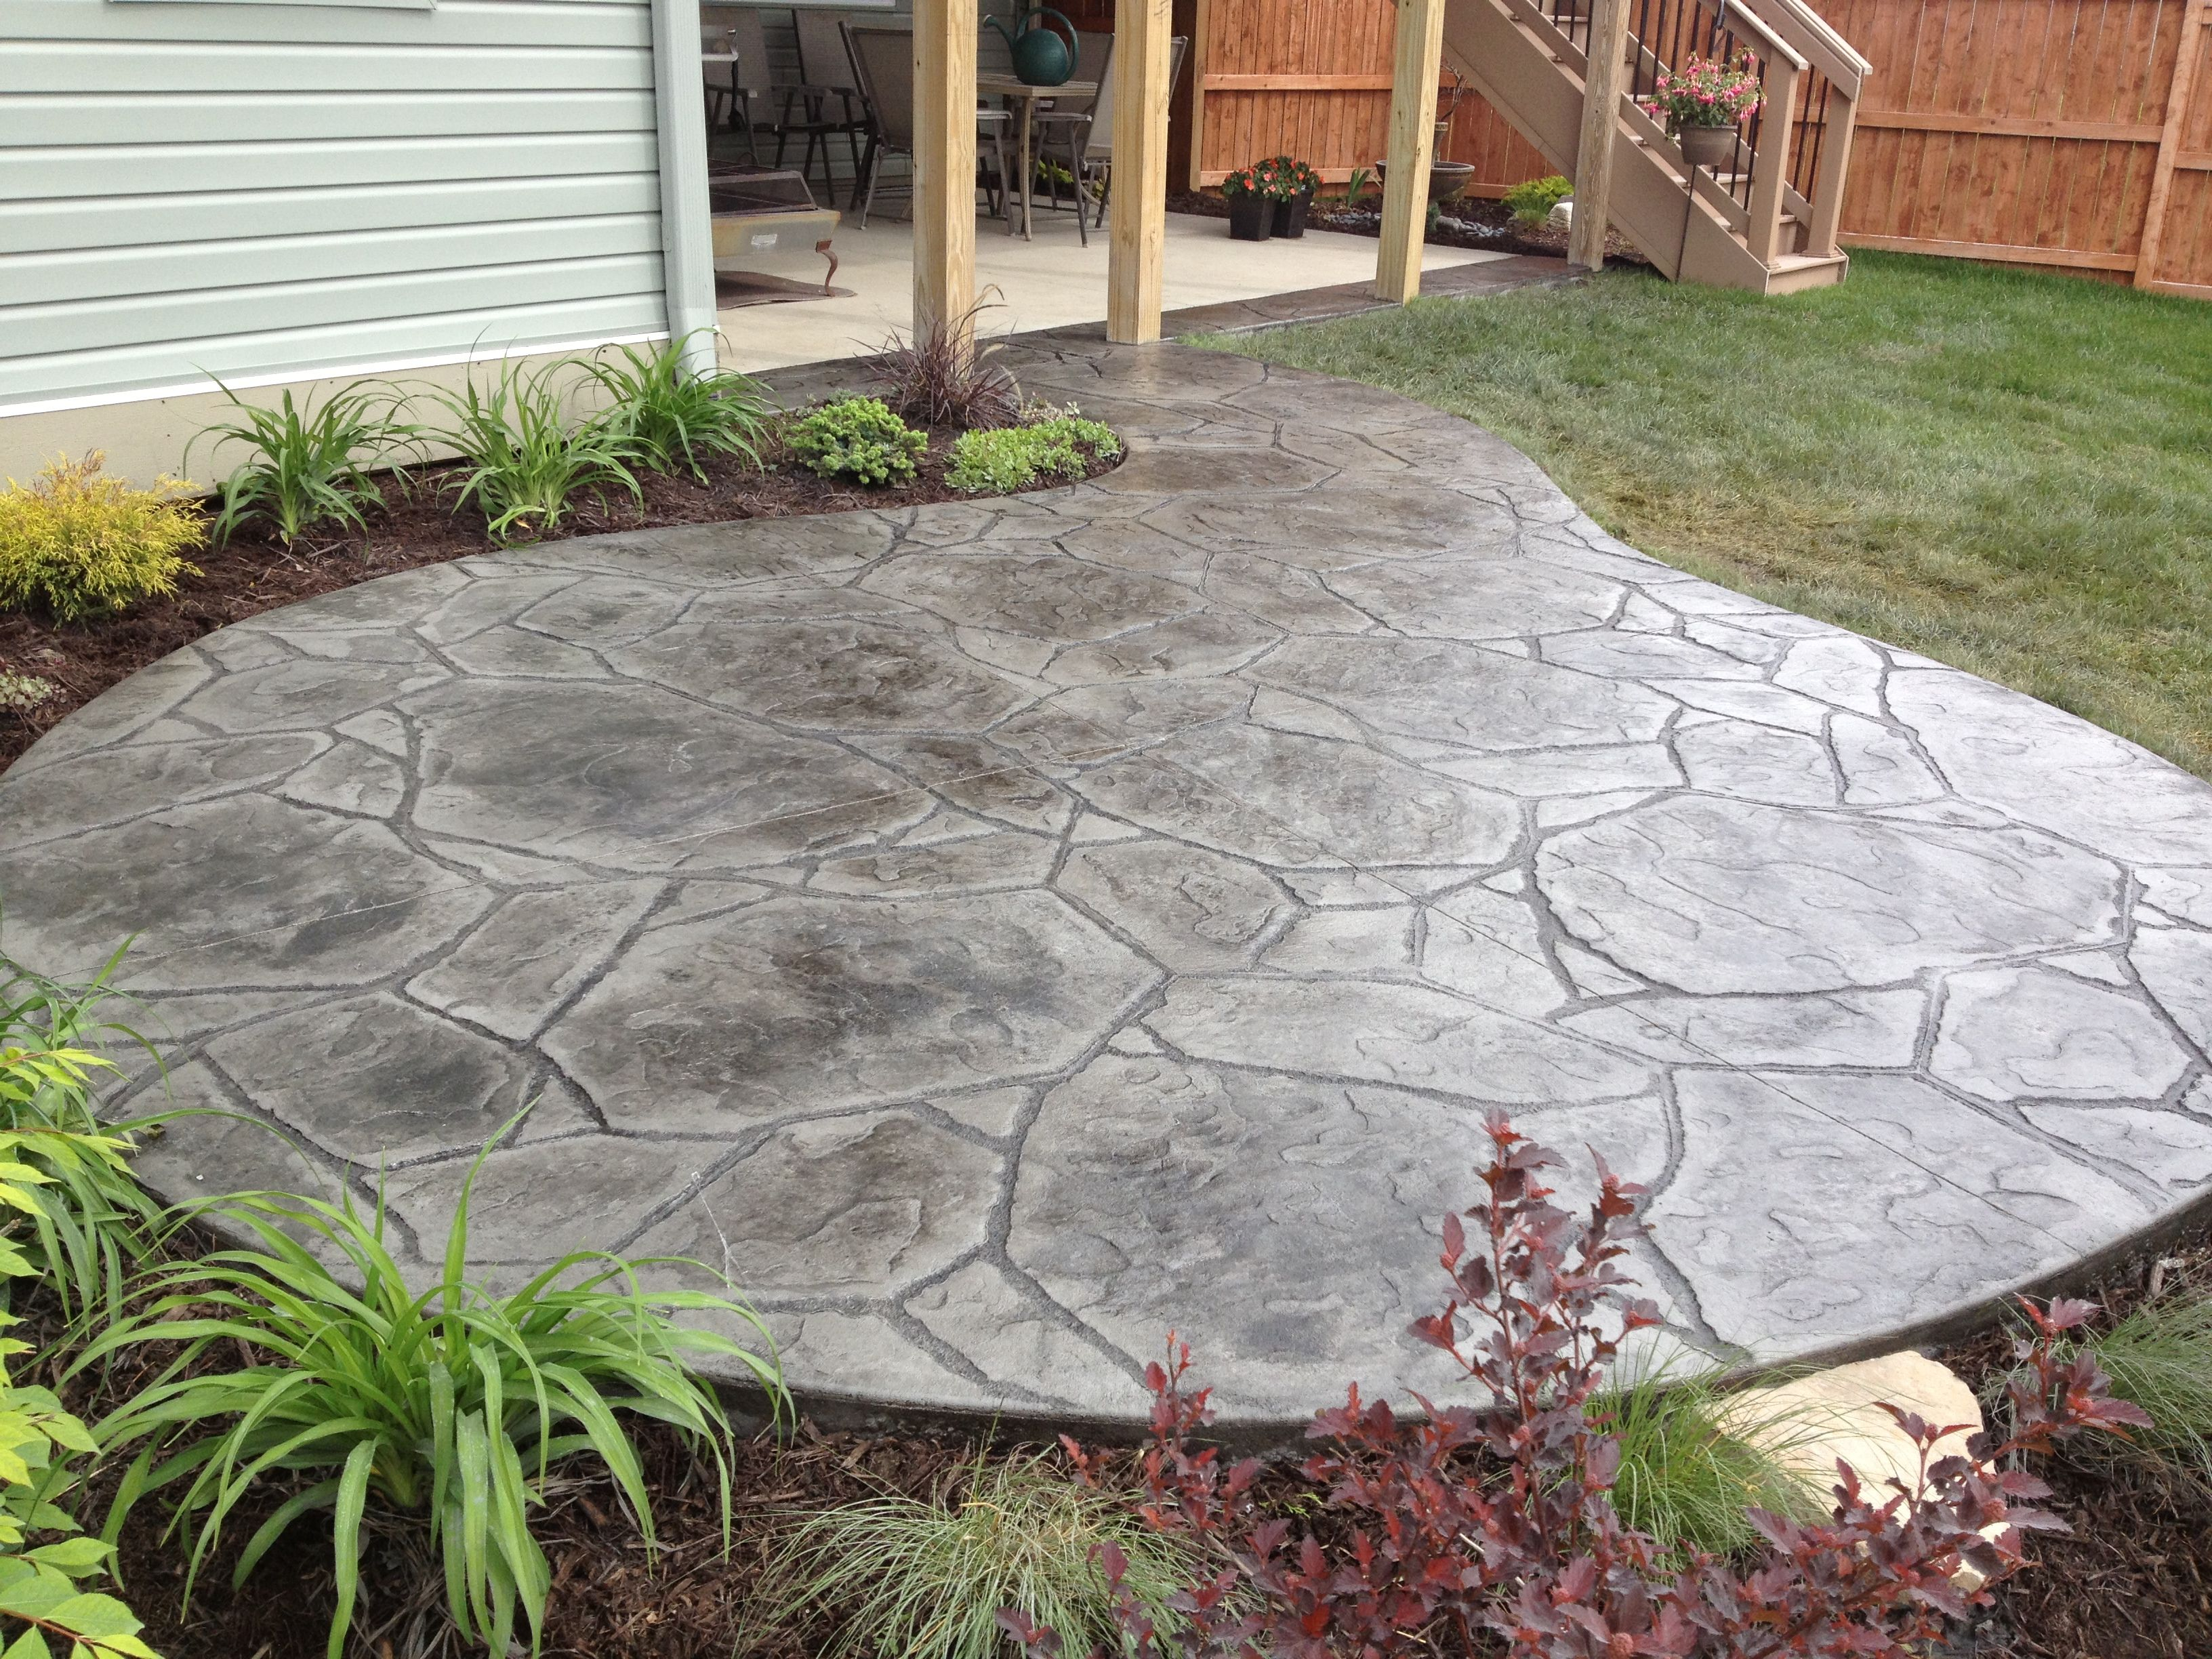 Superieur Arizona Flagstone Stamped Concrete Patio Stamped Concrete Patios, Concrete  Design, Outdoor Fire Pits,